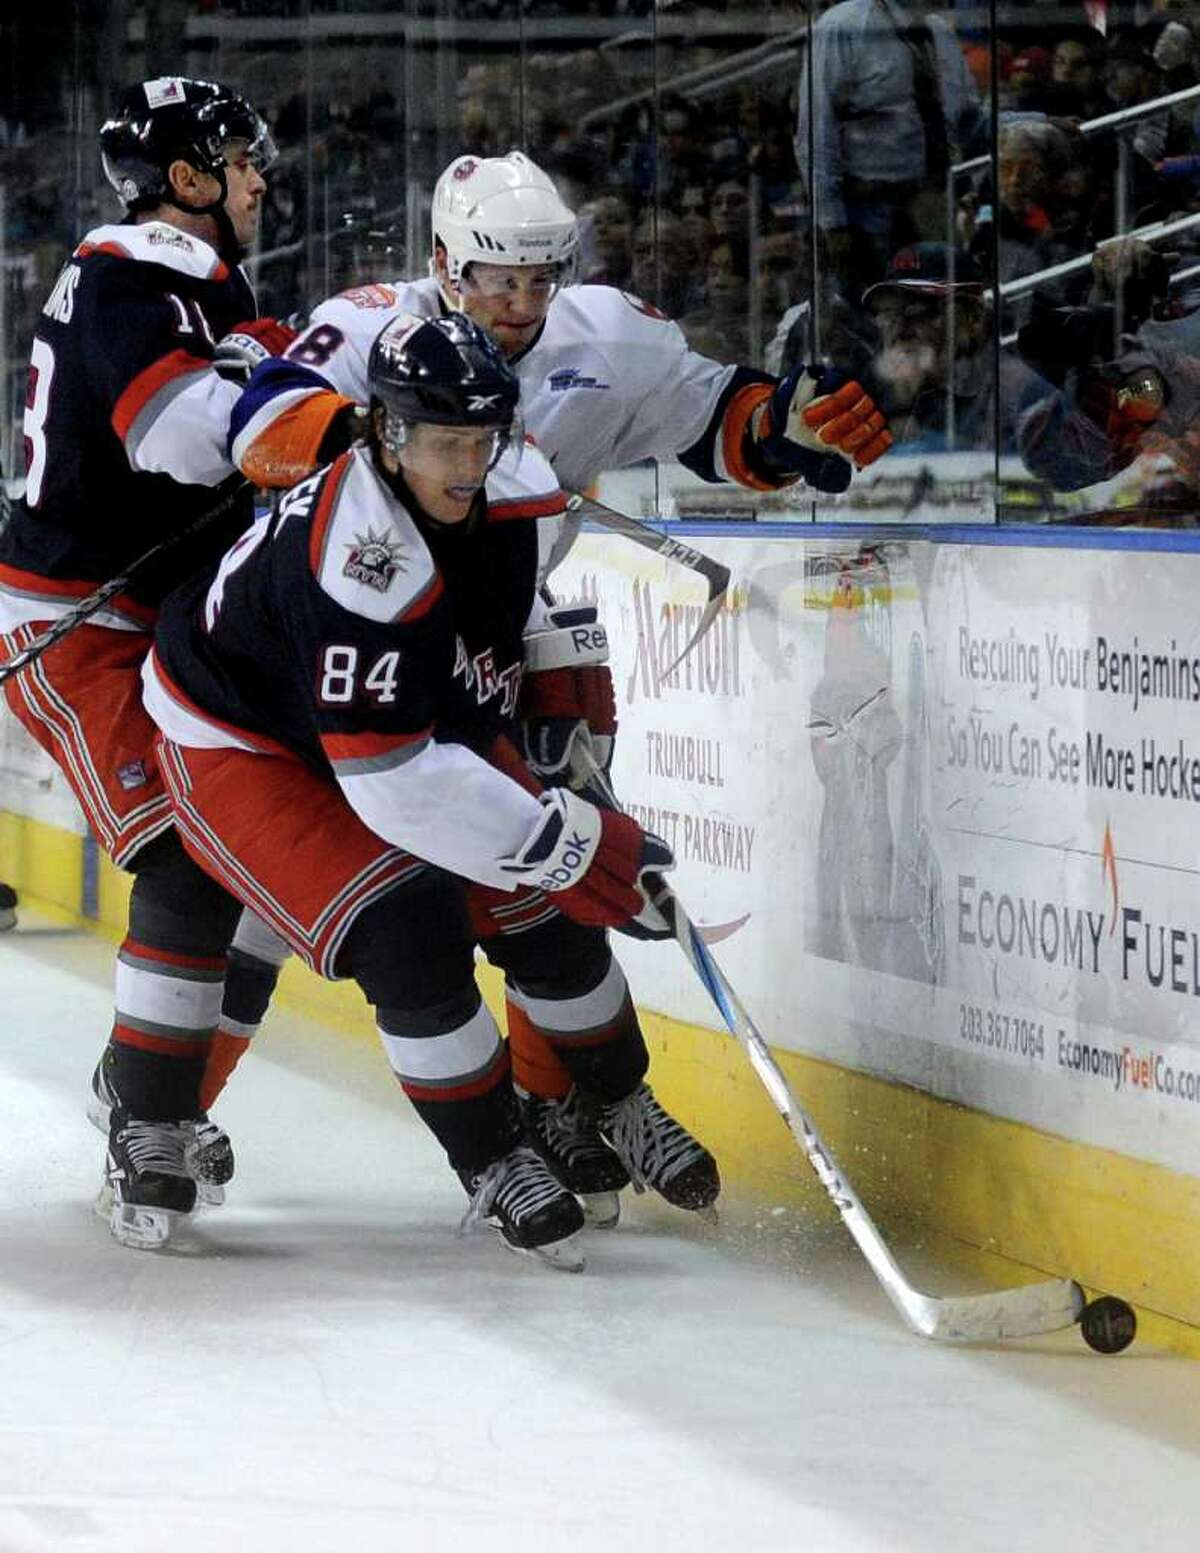 The Hartford Wolf Pack takes on the Springfield Falcons at the XL Center in Hartford on Friday. Find out more.